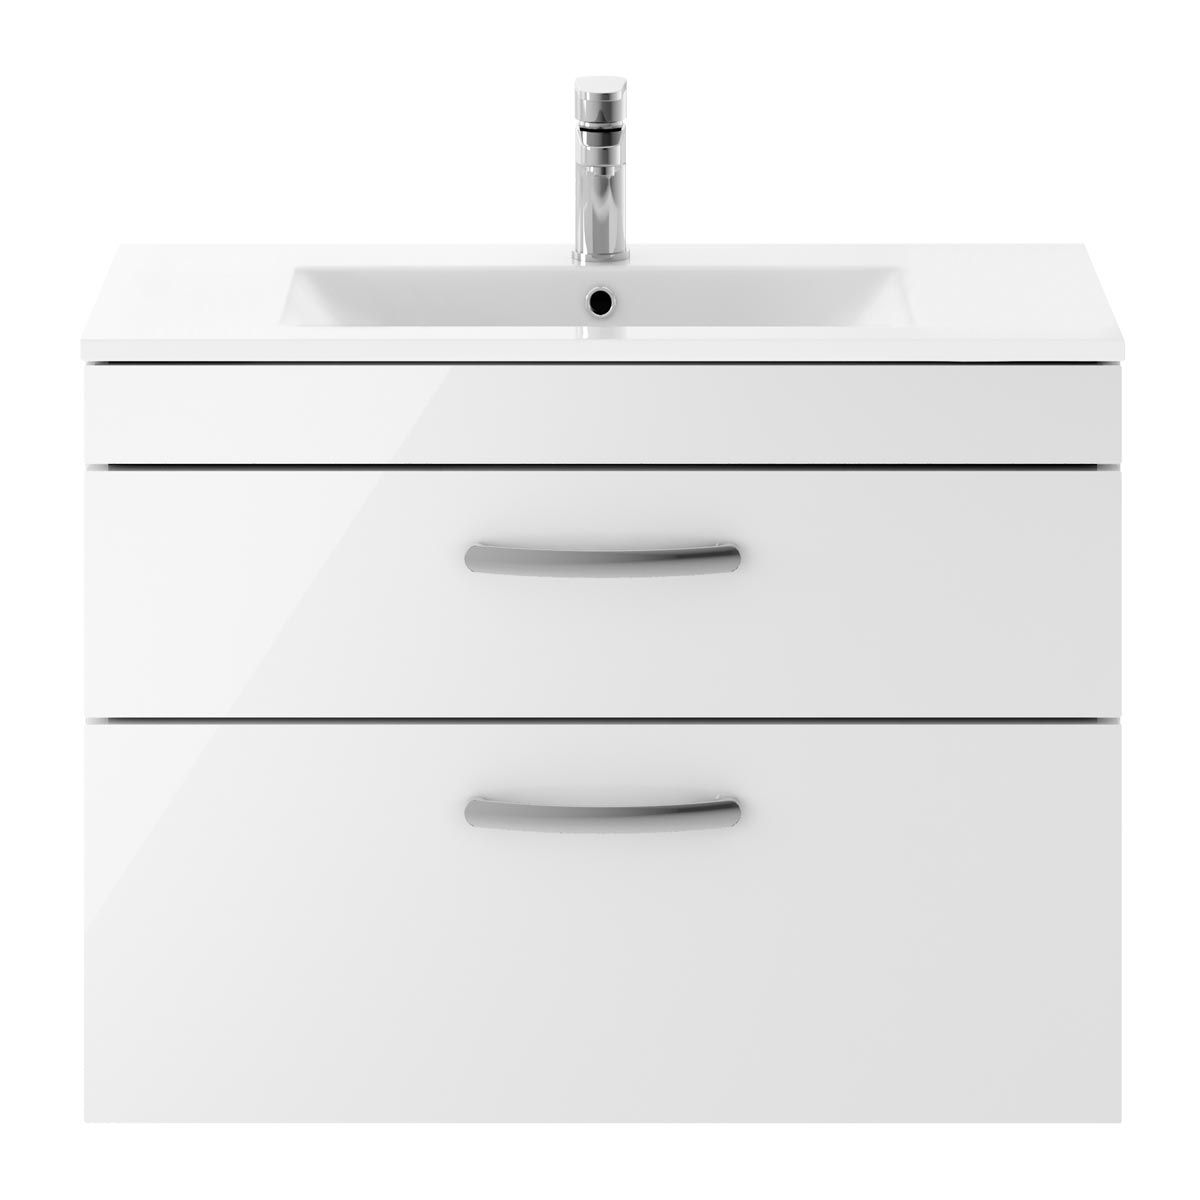 Nuie Athena Gloss White 2 Drawer Wall Hung Vanity Unit with 18mm Profile Basin 800mm